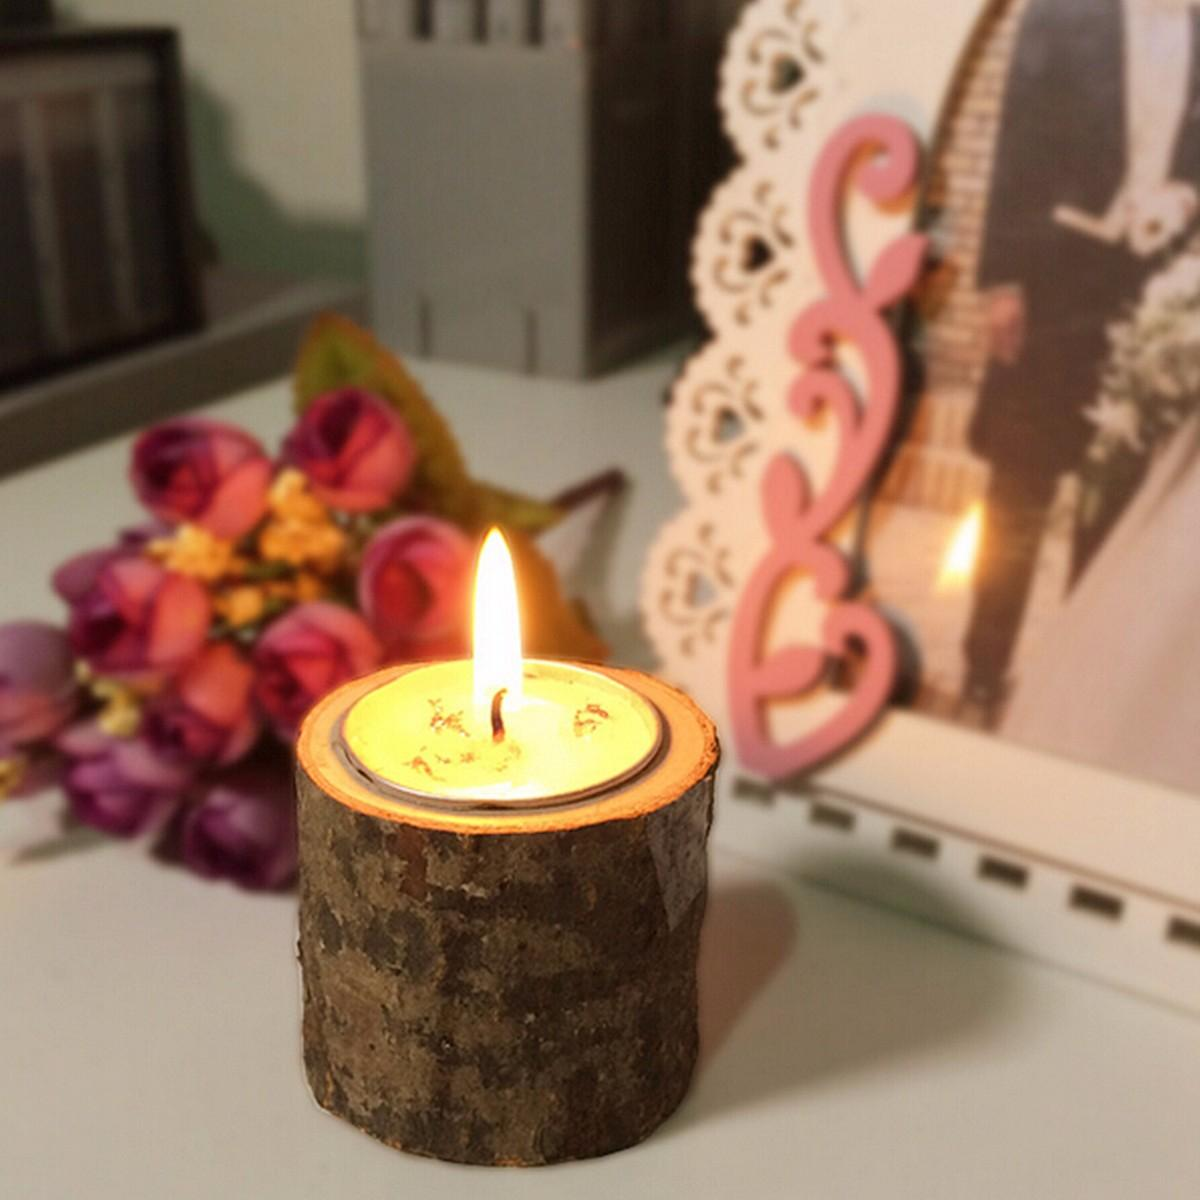 Wooden Rustic Candle Holder Wedding Home Decor Candlesticks Lover Romantic Vindicate Candlelight Dinner Props